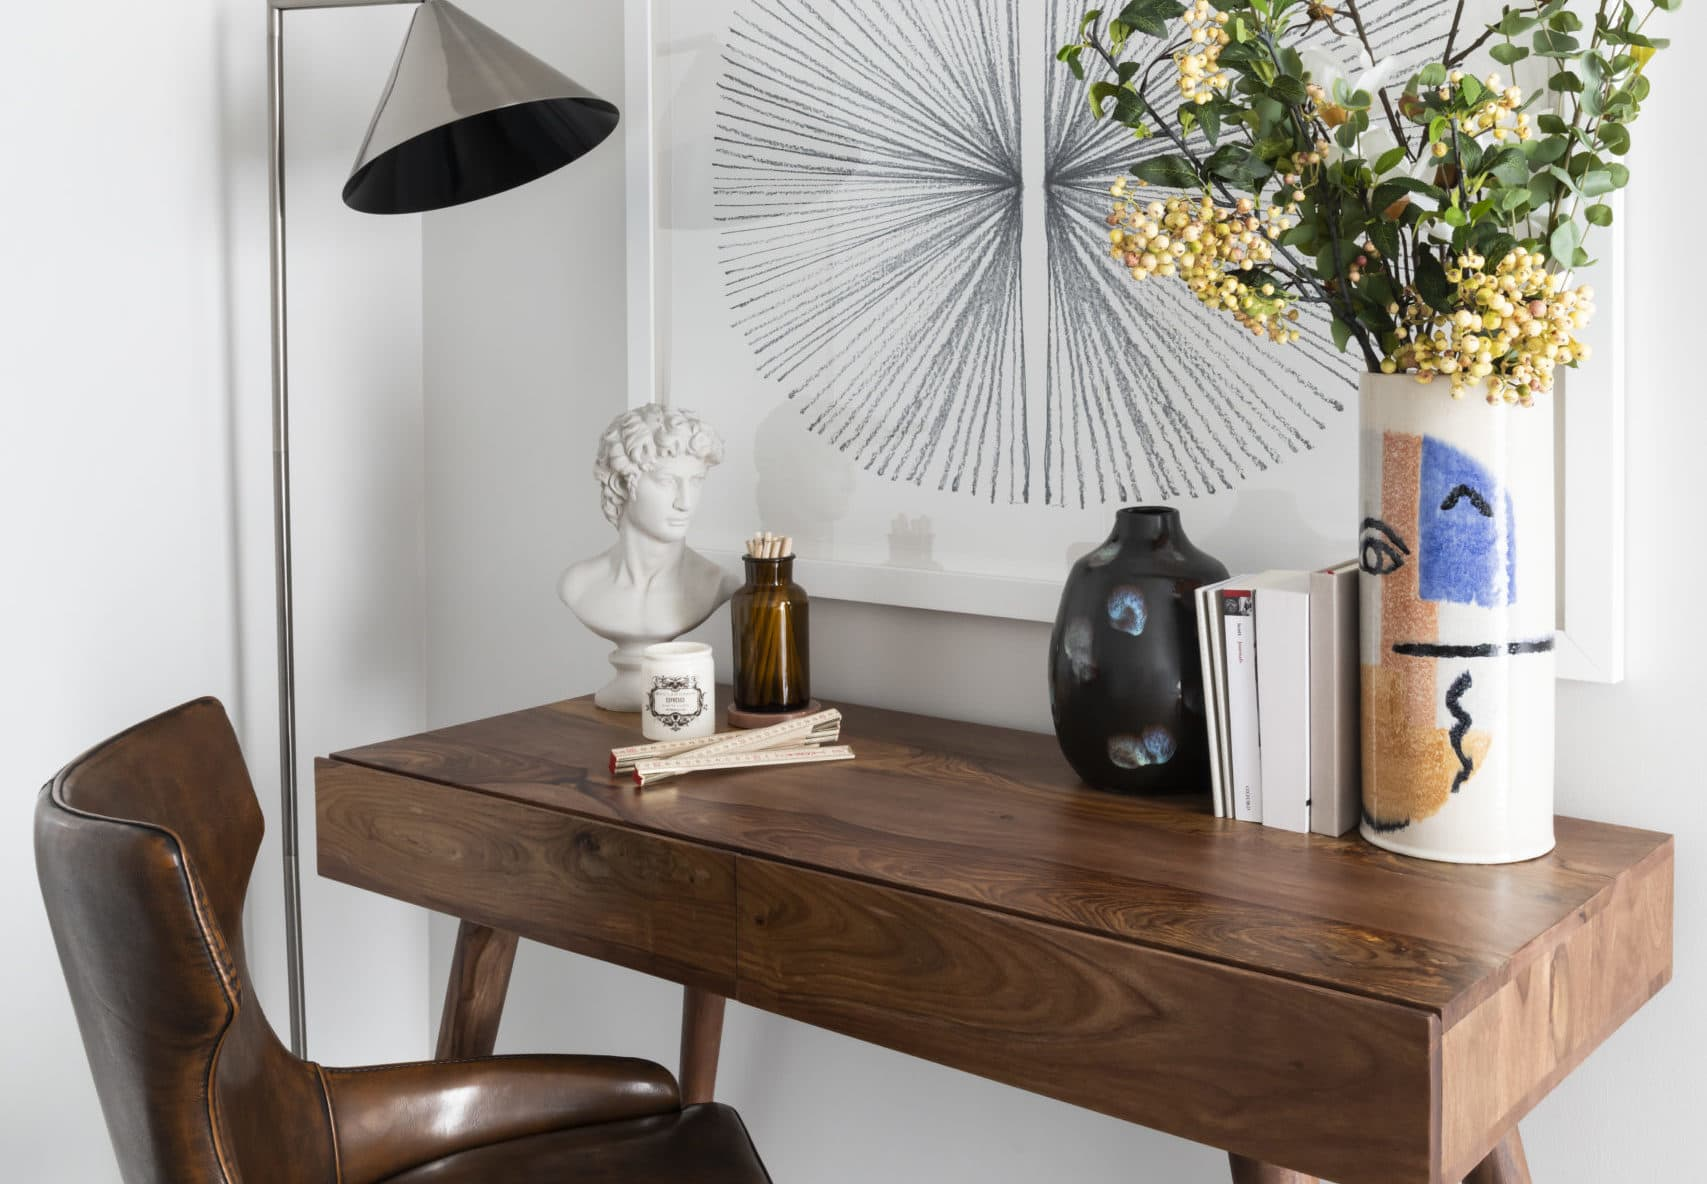 Seven interior design tips from INVESTA - decorating a new build Shared Ownership or Help to Buy home